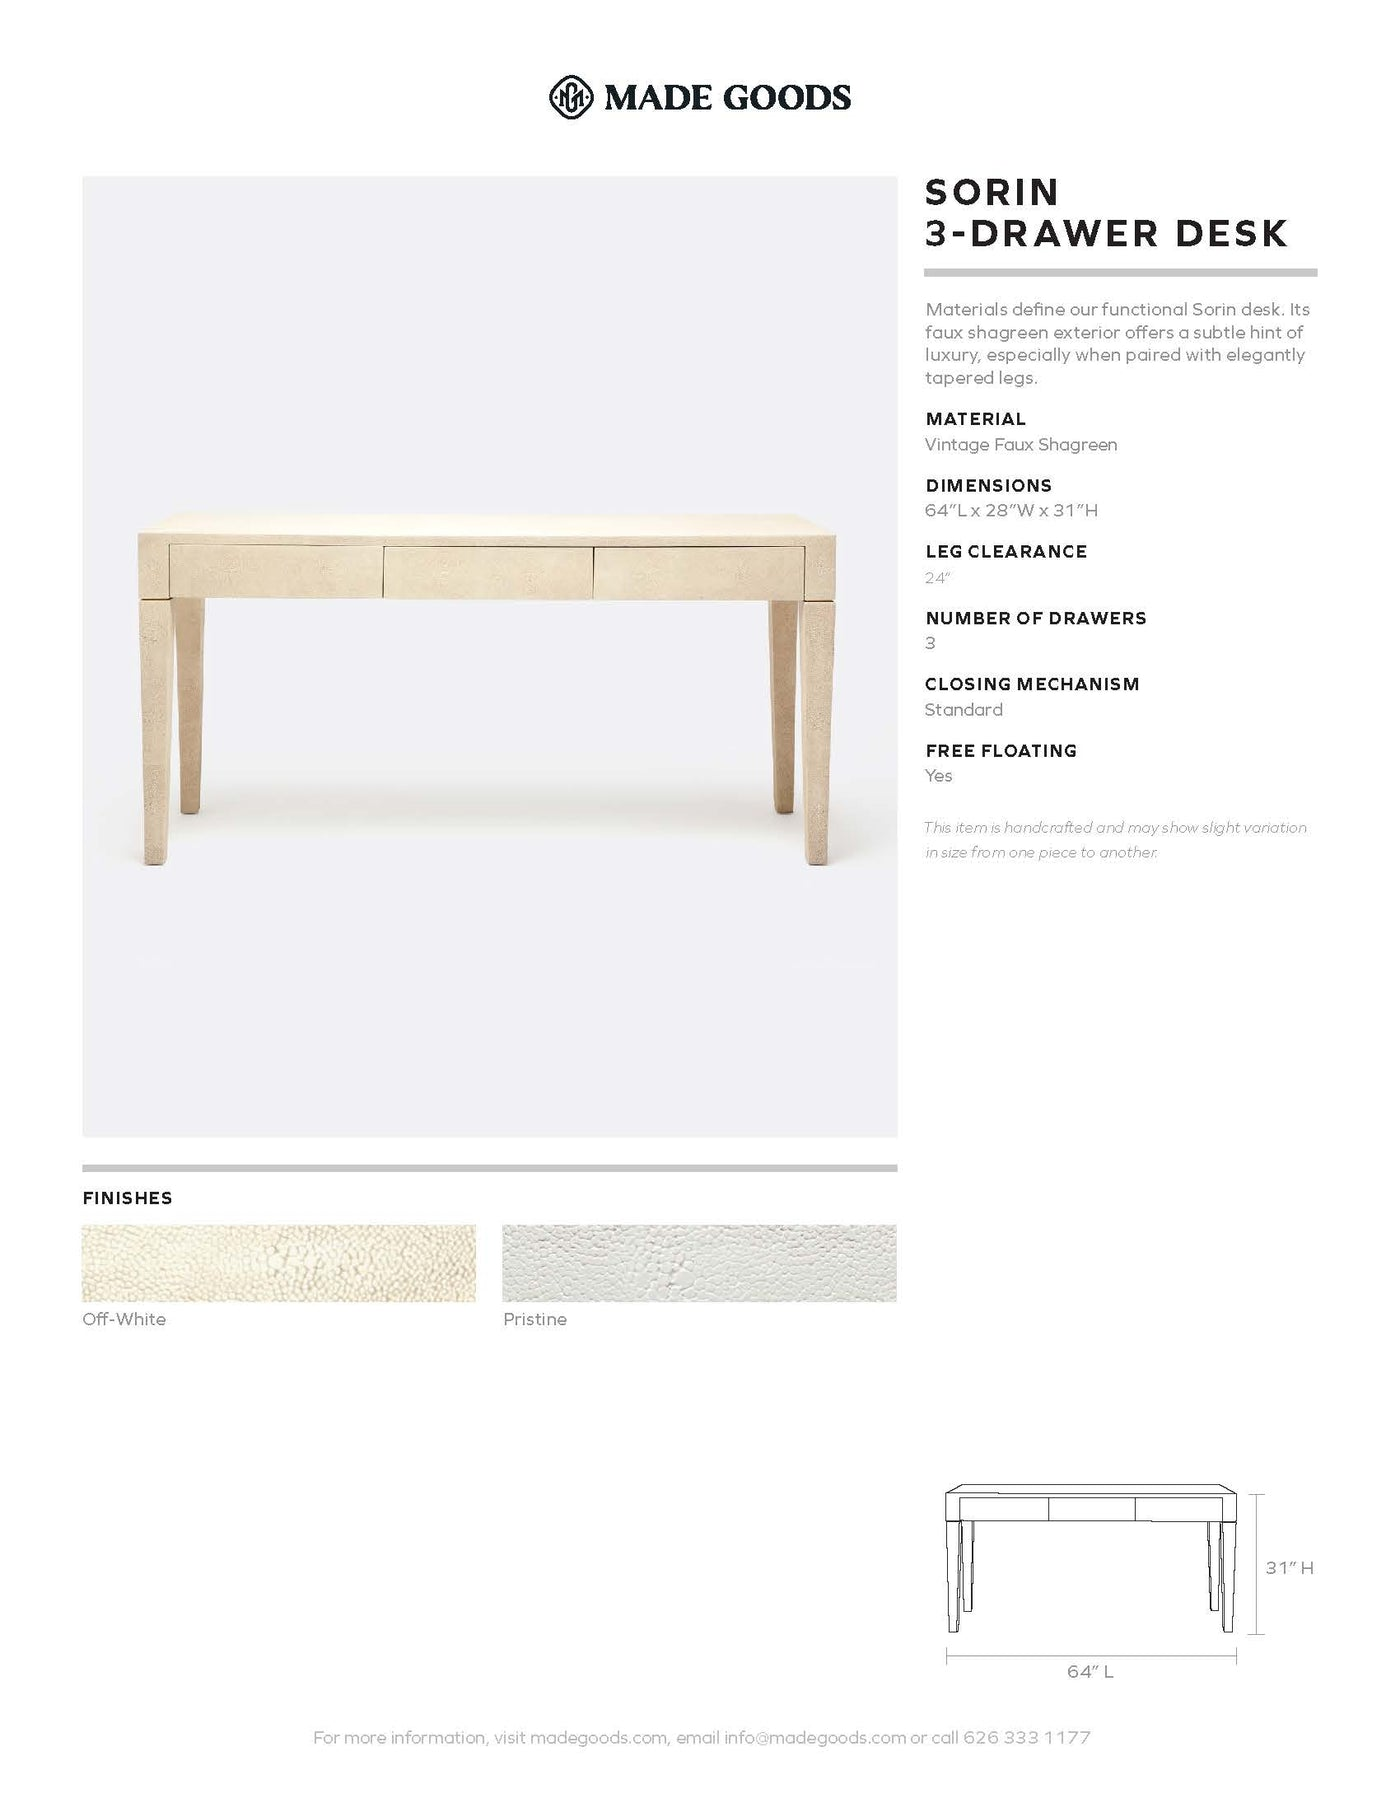 made goods sorin 3 drawer desk tearsheet